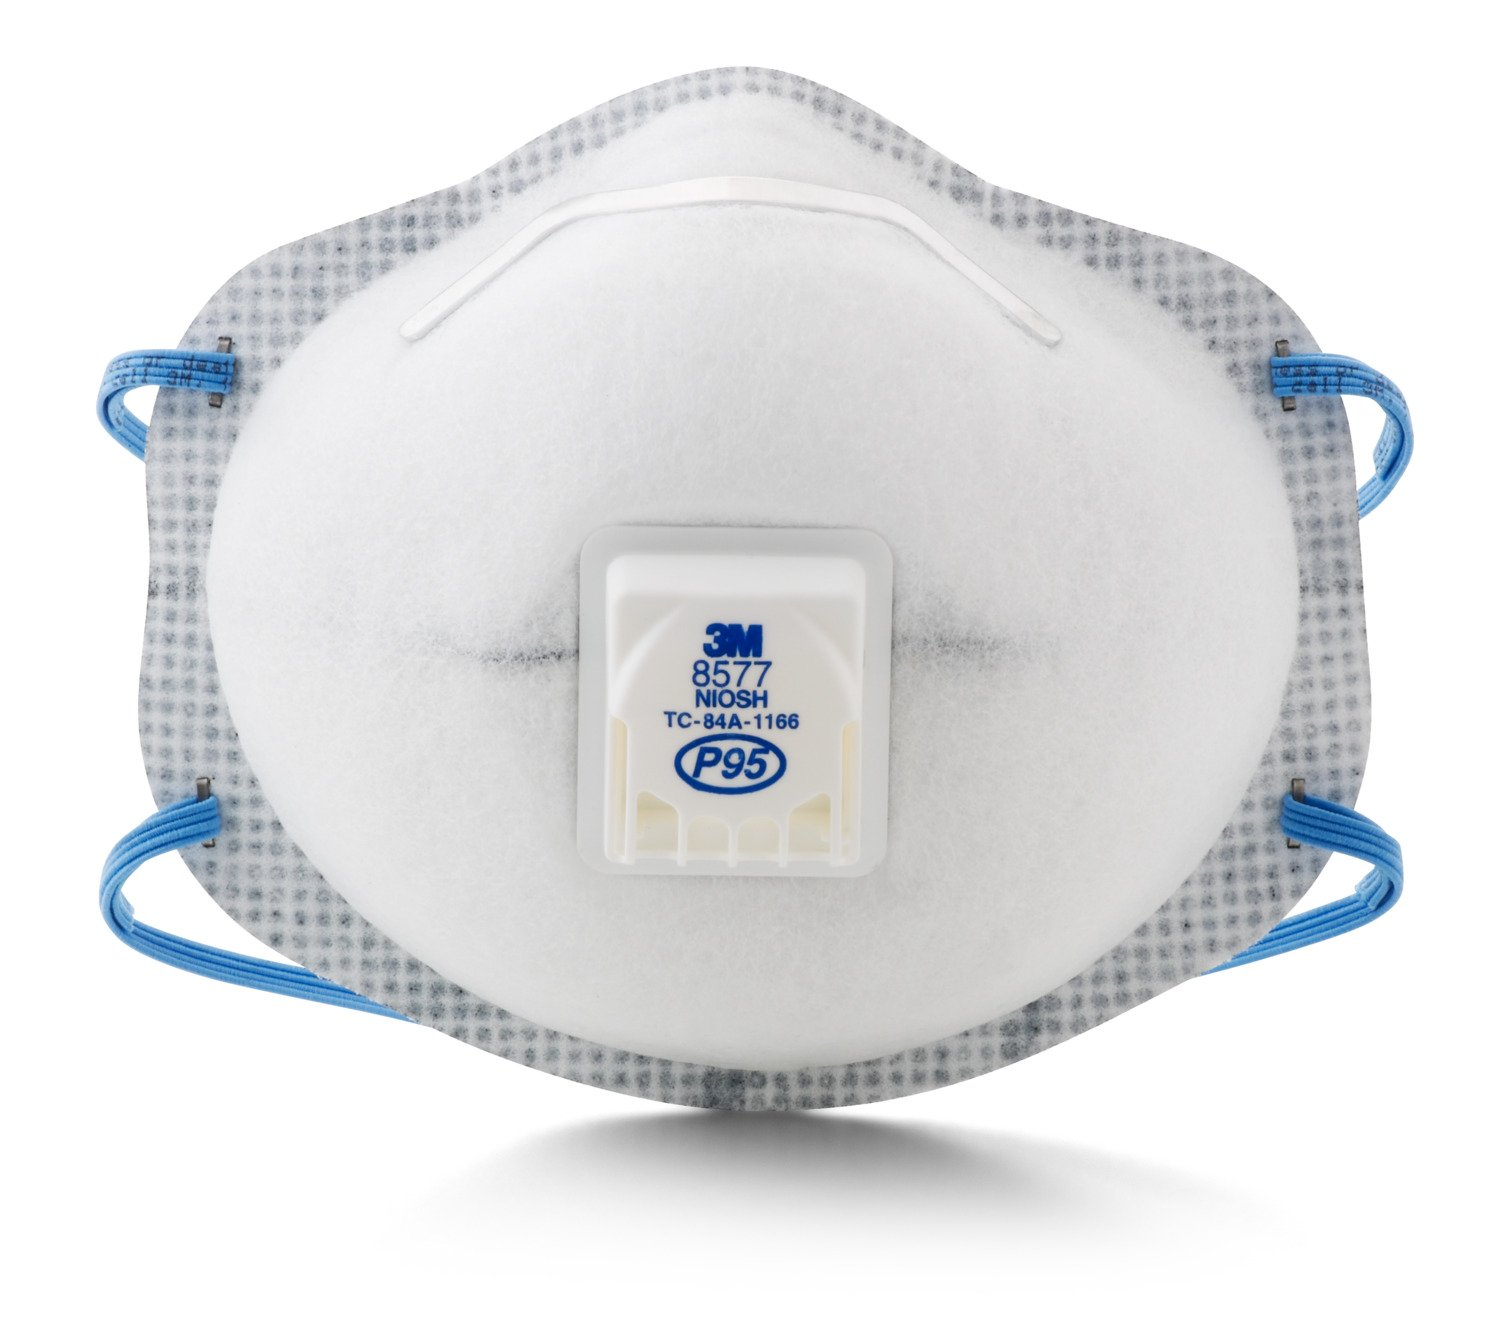 3M Personal Protective Equipment 8577 Respirator, 10 Pack